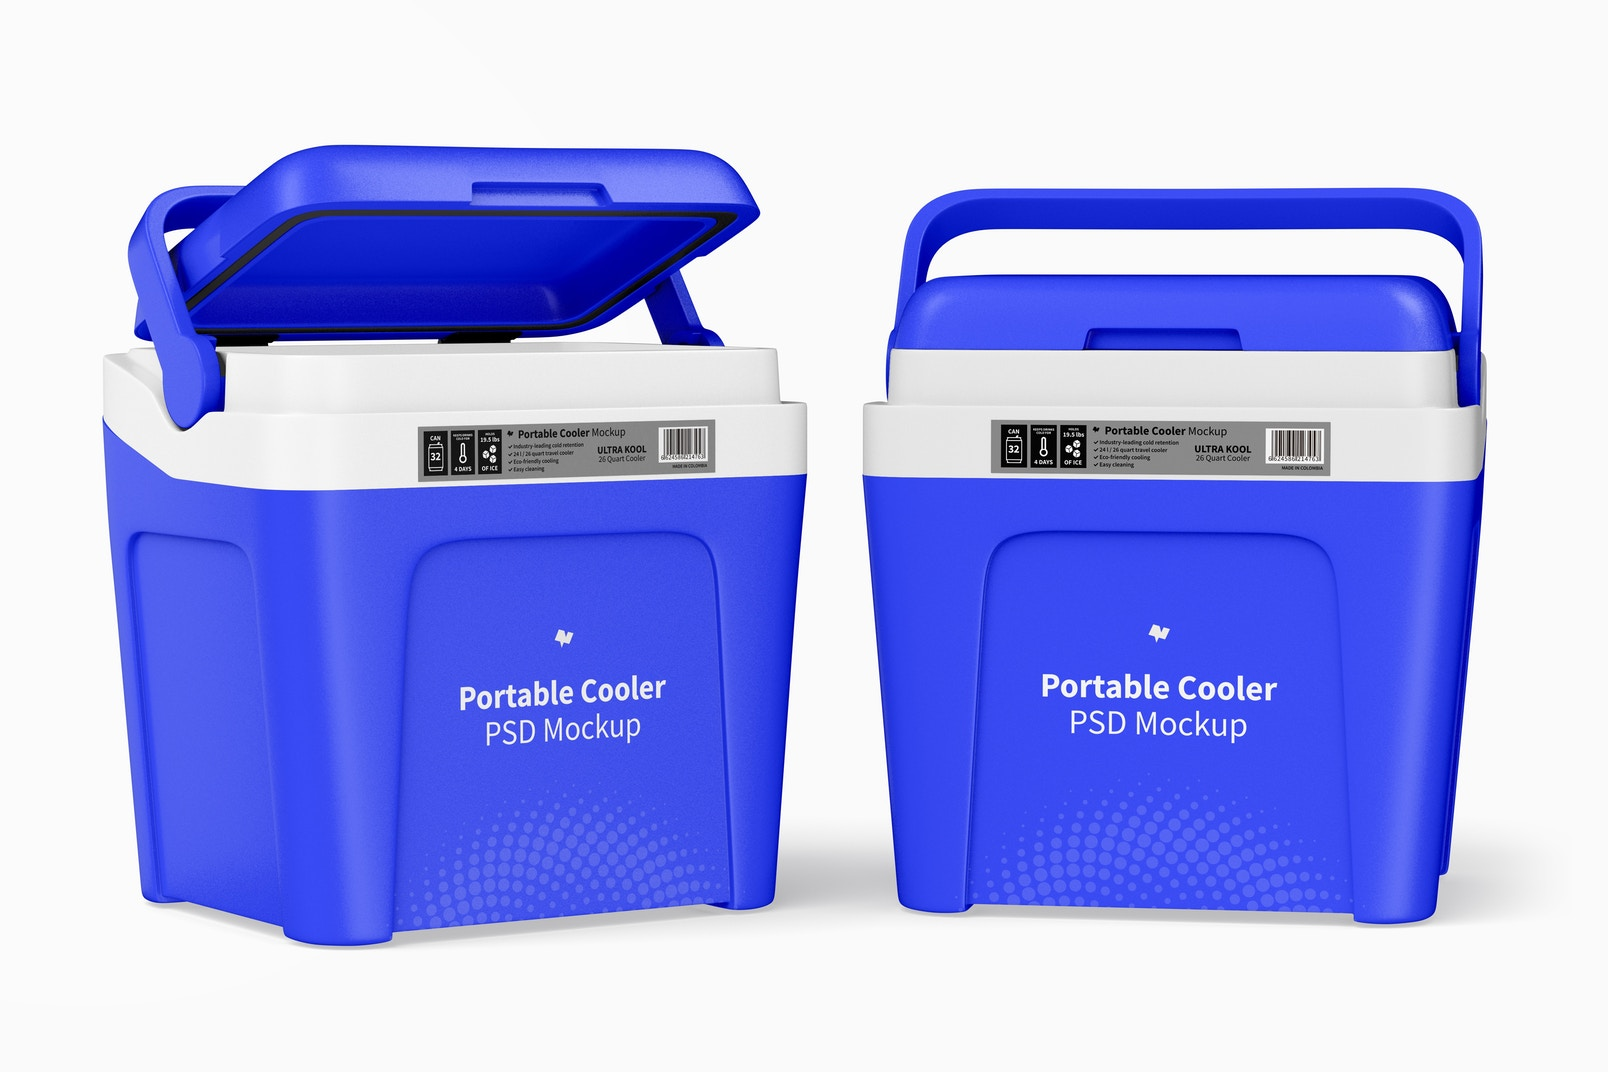 Portable Coolers Mockup, Opened and Closed